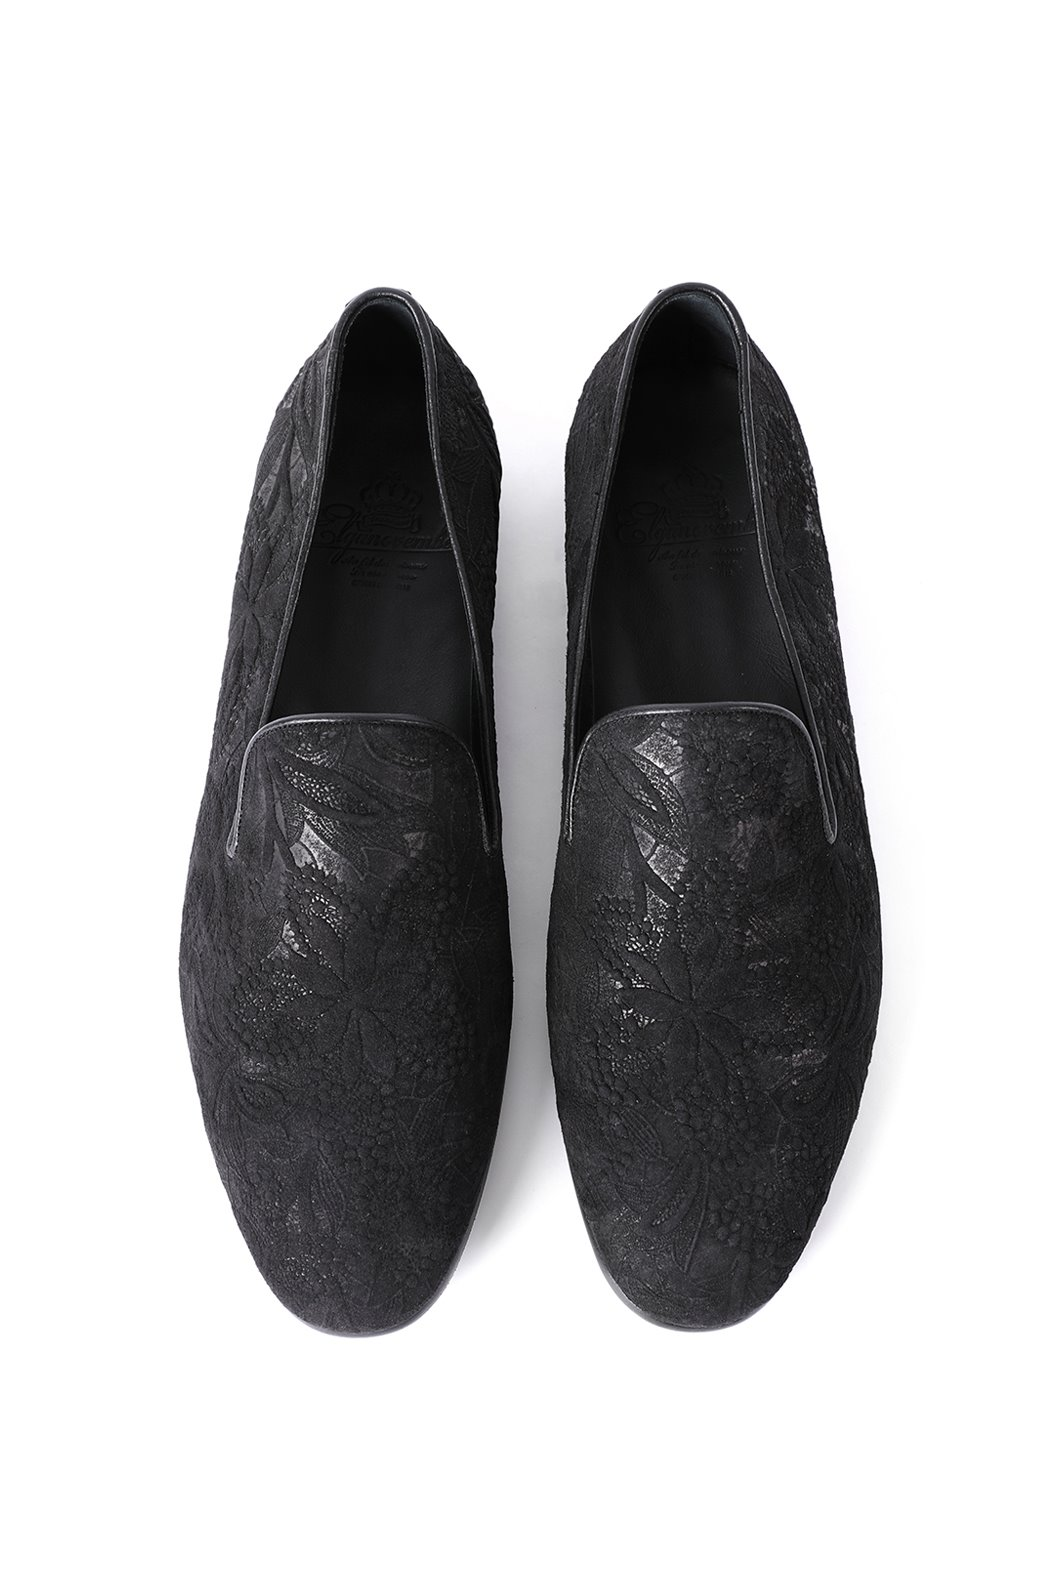 559 Artisan ITALY Goat Flower Loafer-Black